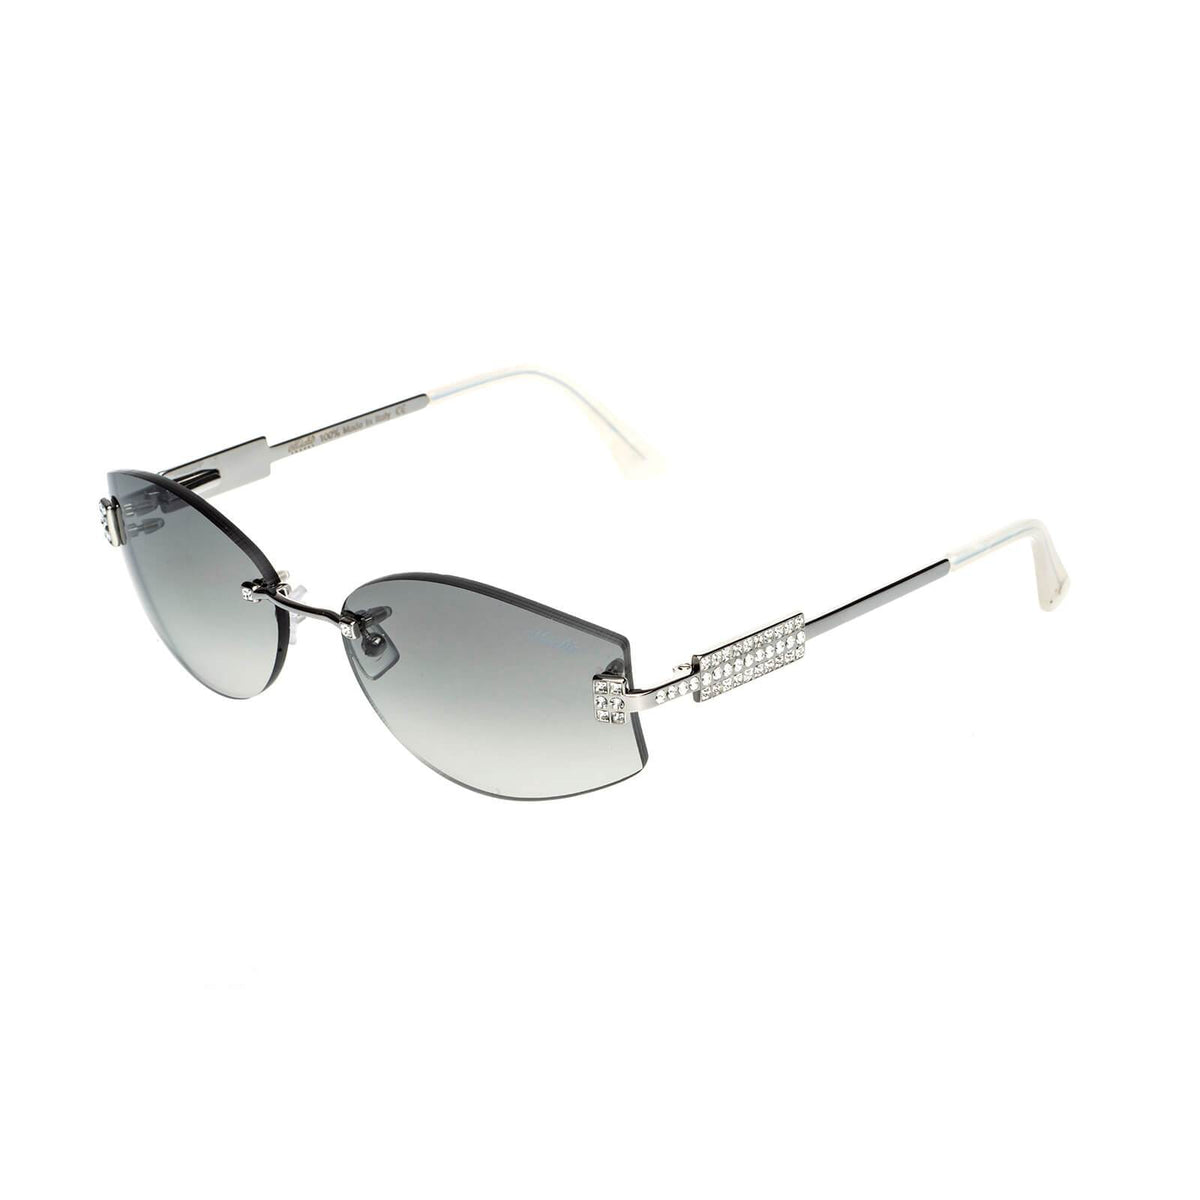 Miché Empress Sunglasses - Grey - Silver - White